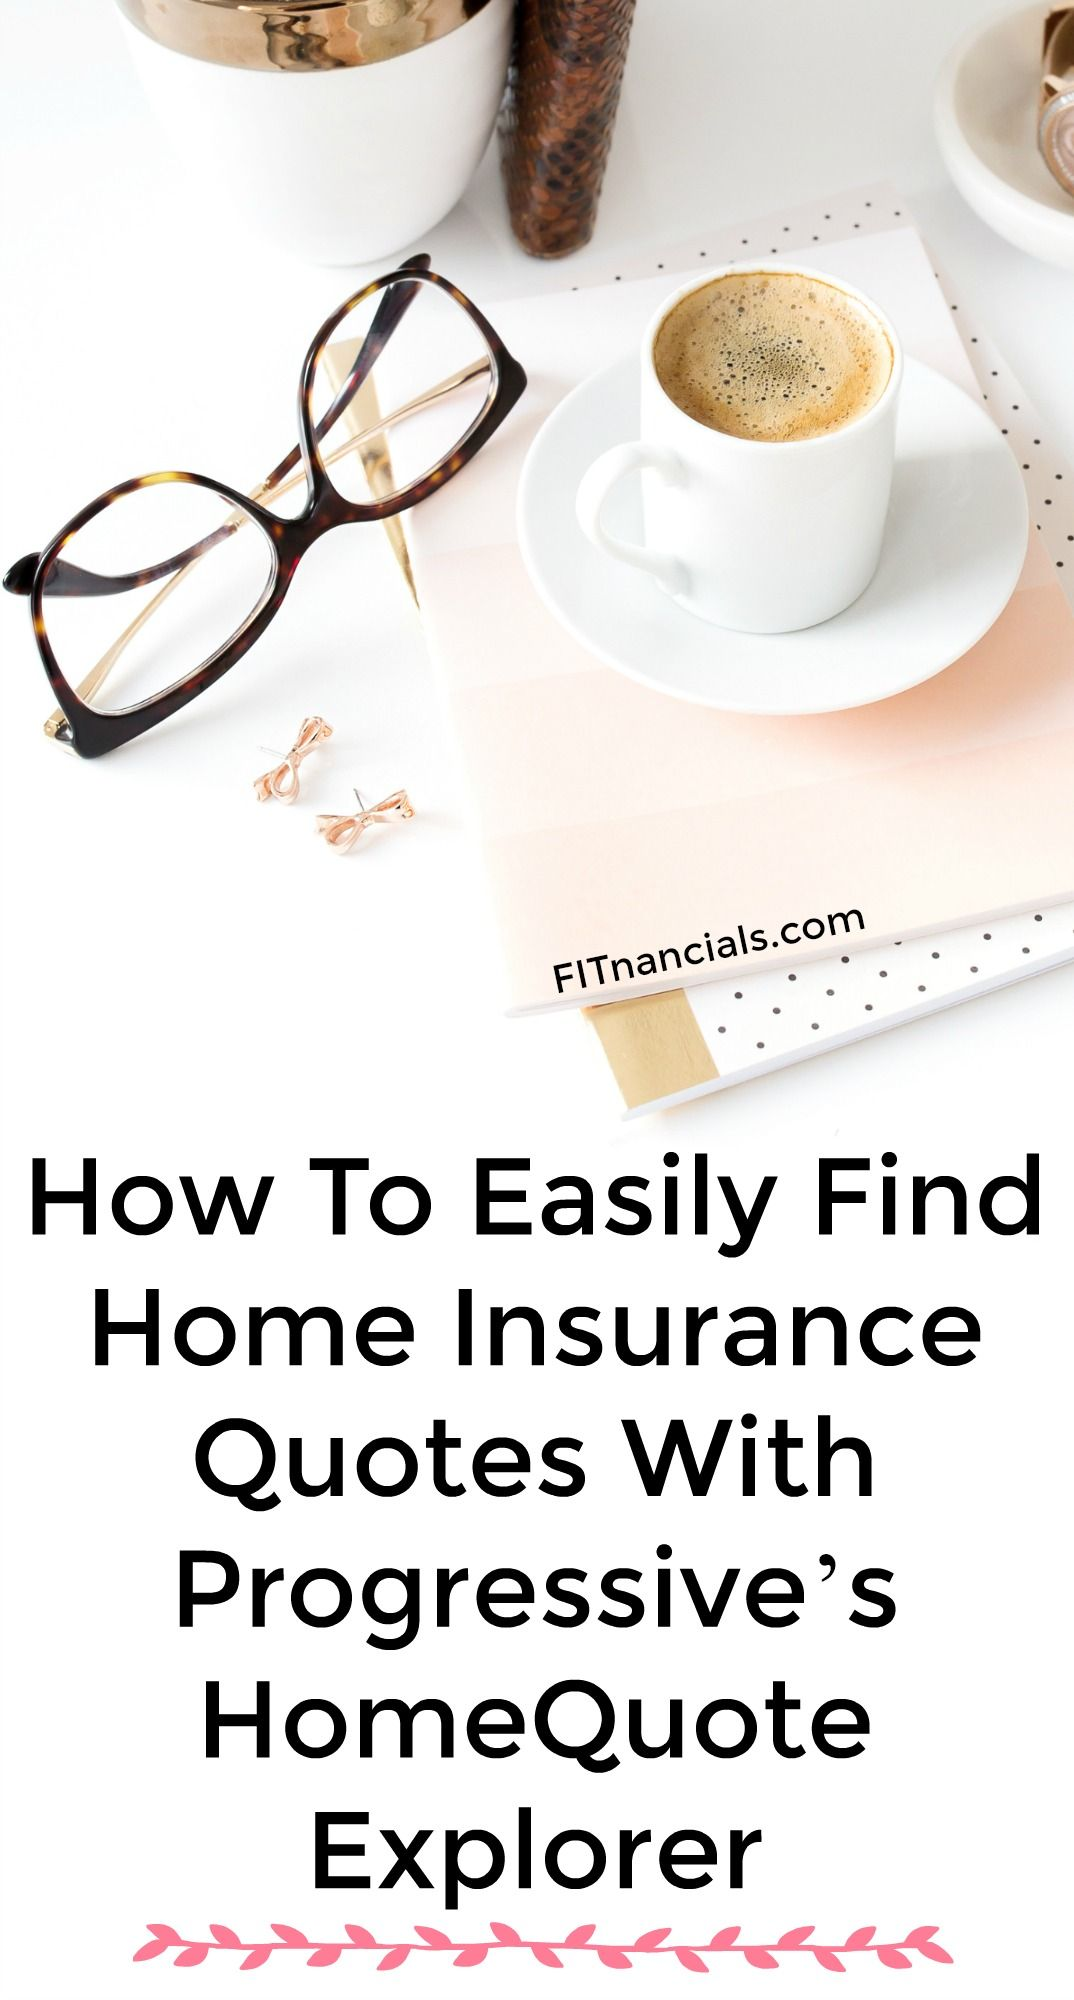 How To Easily Find Home Insurance Quotes Progressive's